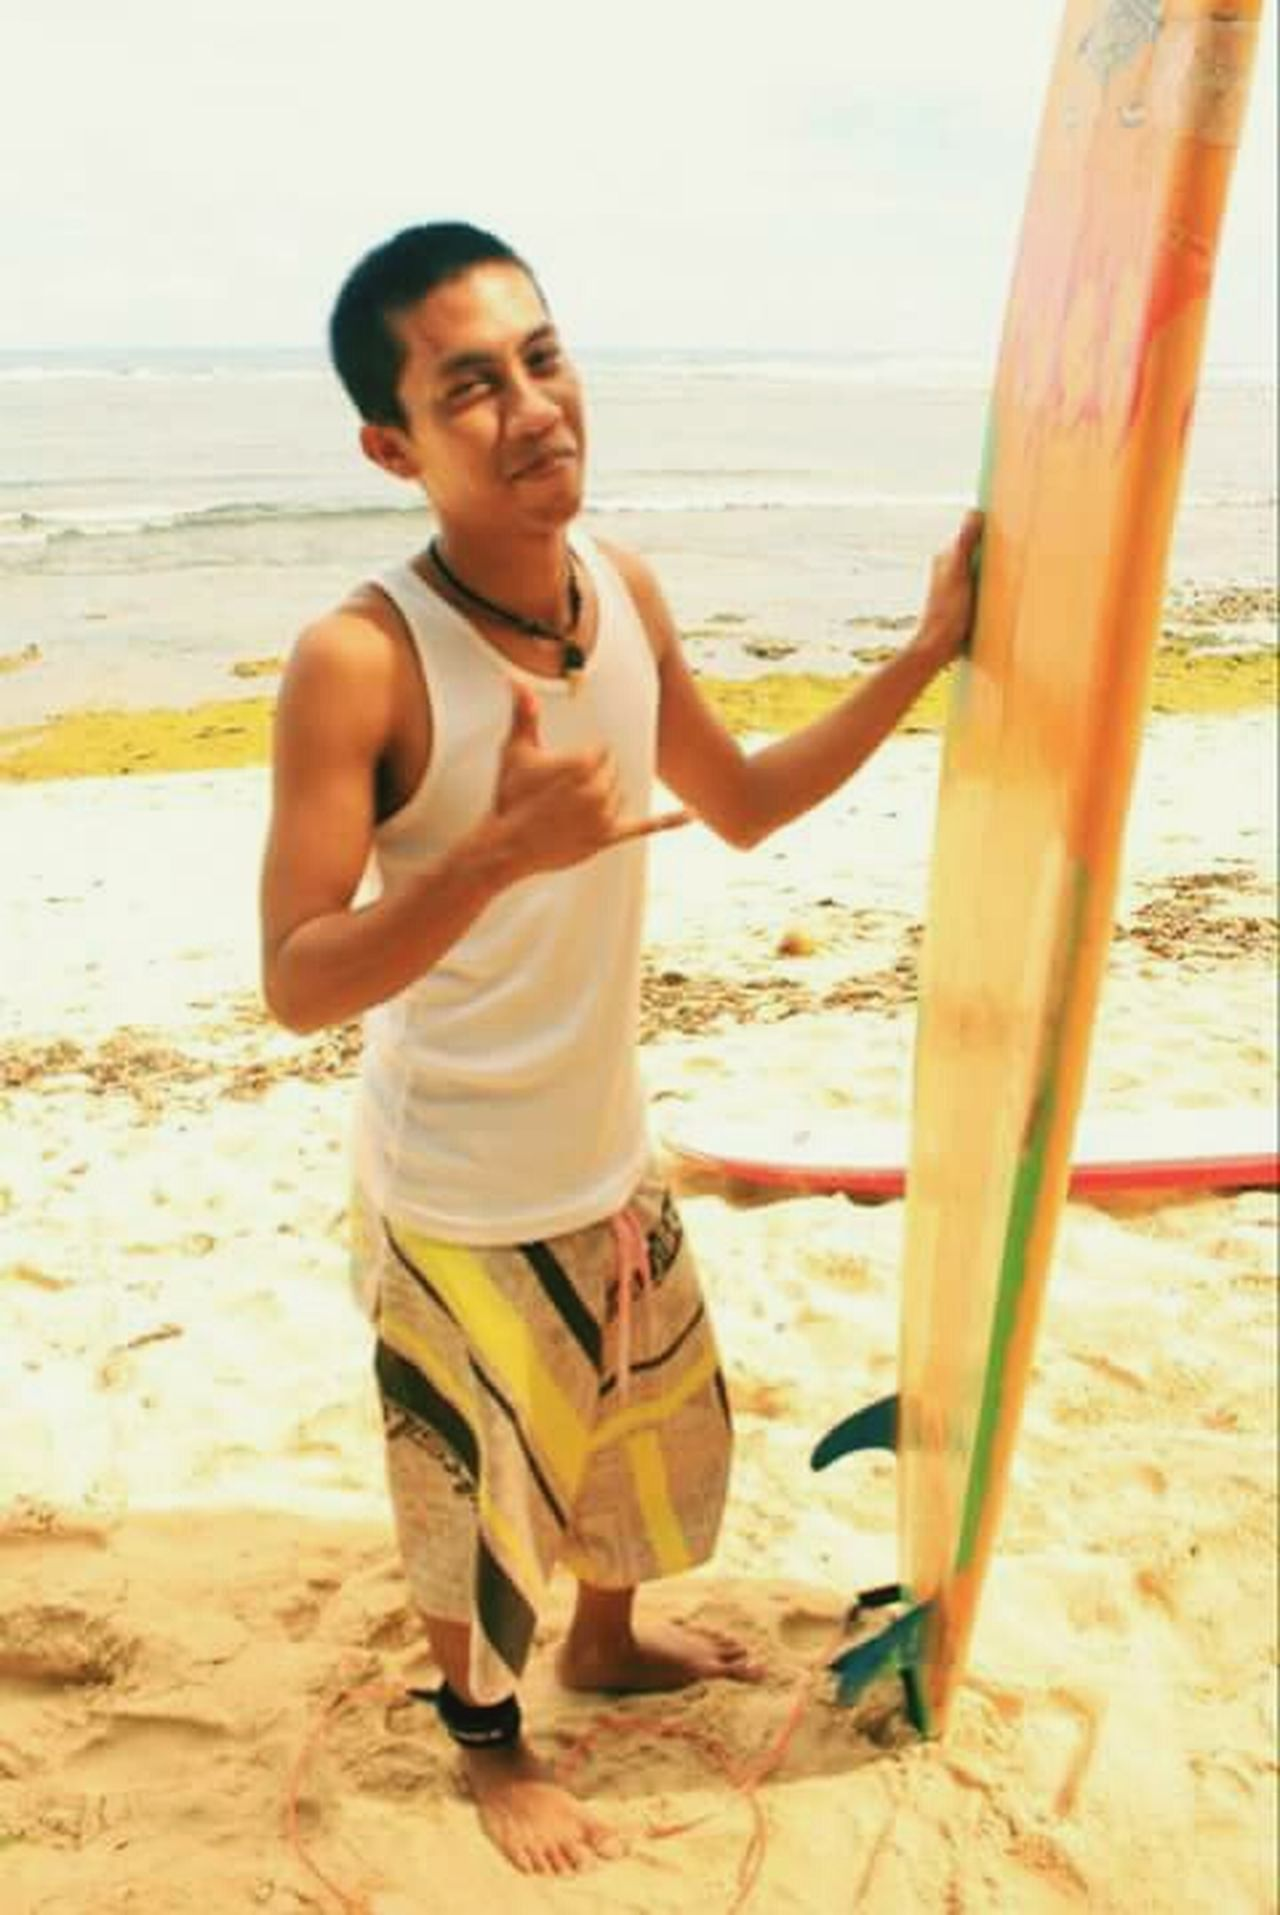 surfin siargao... Taking Photos Tripin' Portrait Surfingparadise Surfinsiargao Life Is A Beach Surferslife Surfing Siargao Island Siargao